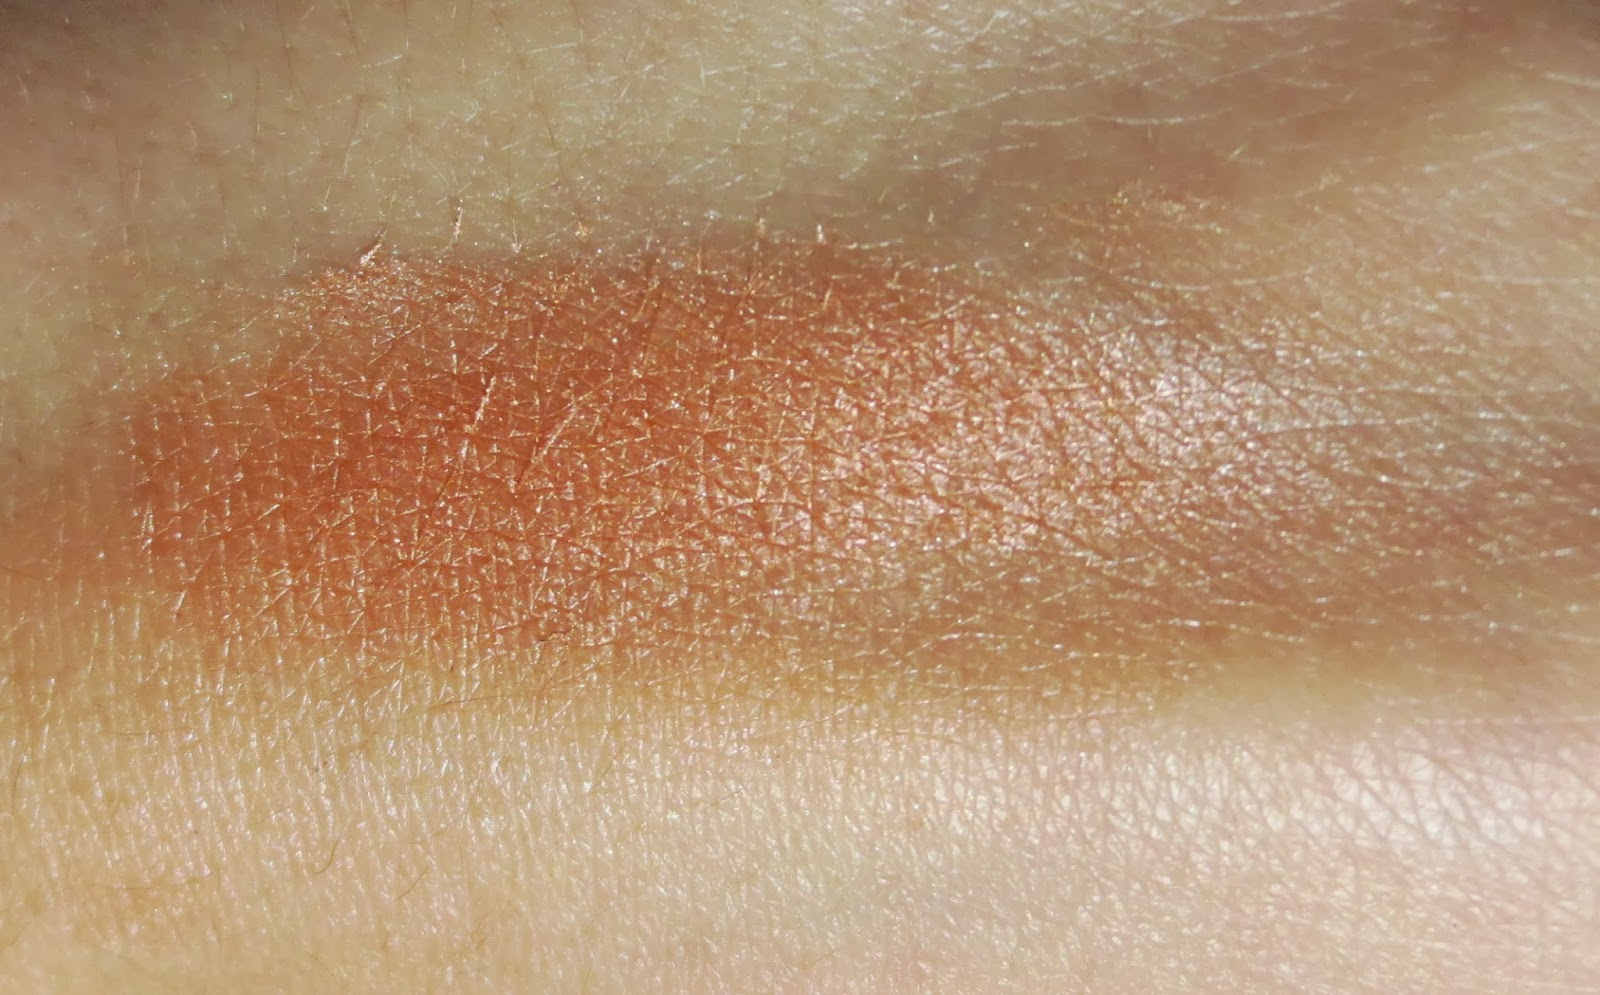 Maybelline Master Hi-Light in Coral Swatches